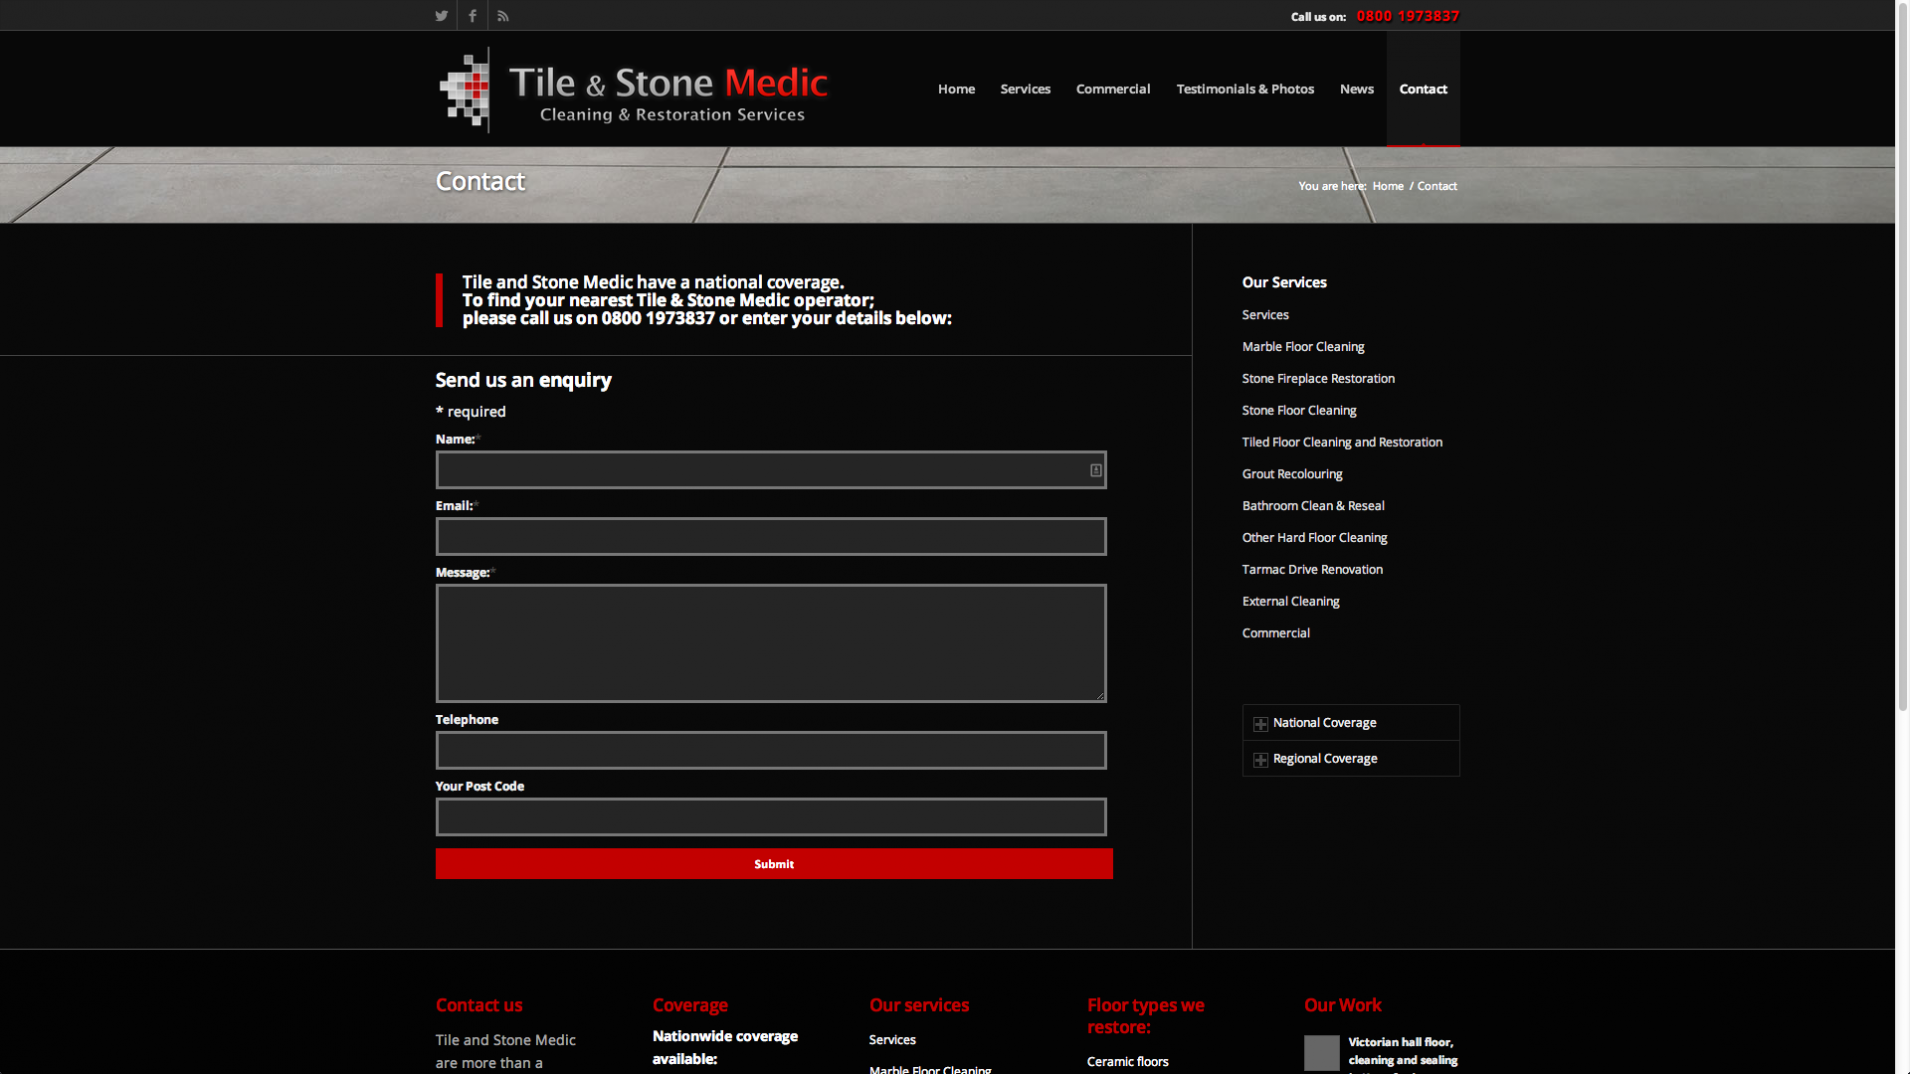 Screen Shot 2013 12 23 at 16.37.47 - Website design for nationwide stone floor restoration company